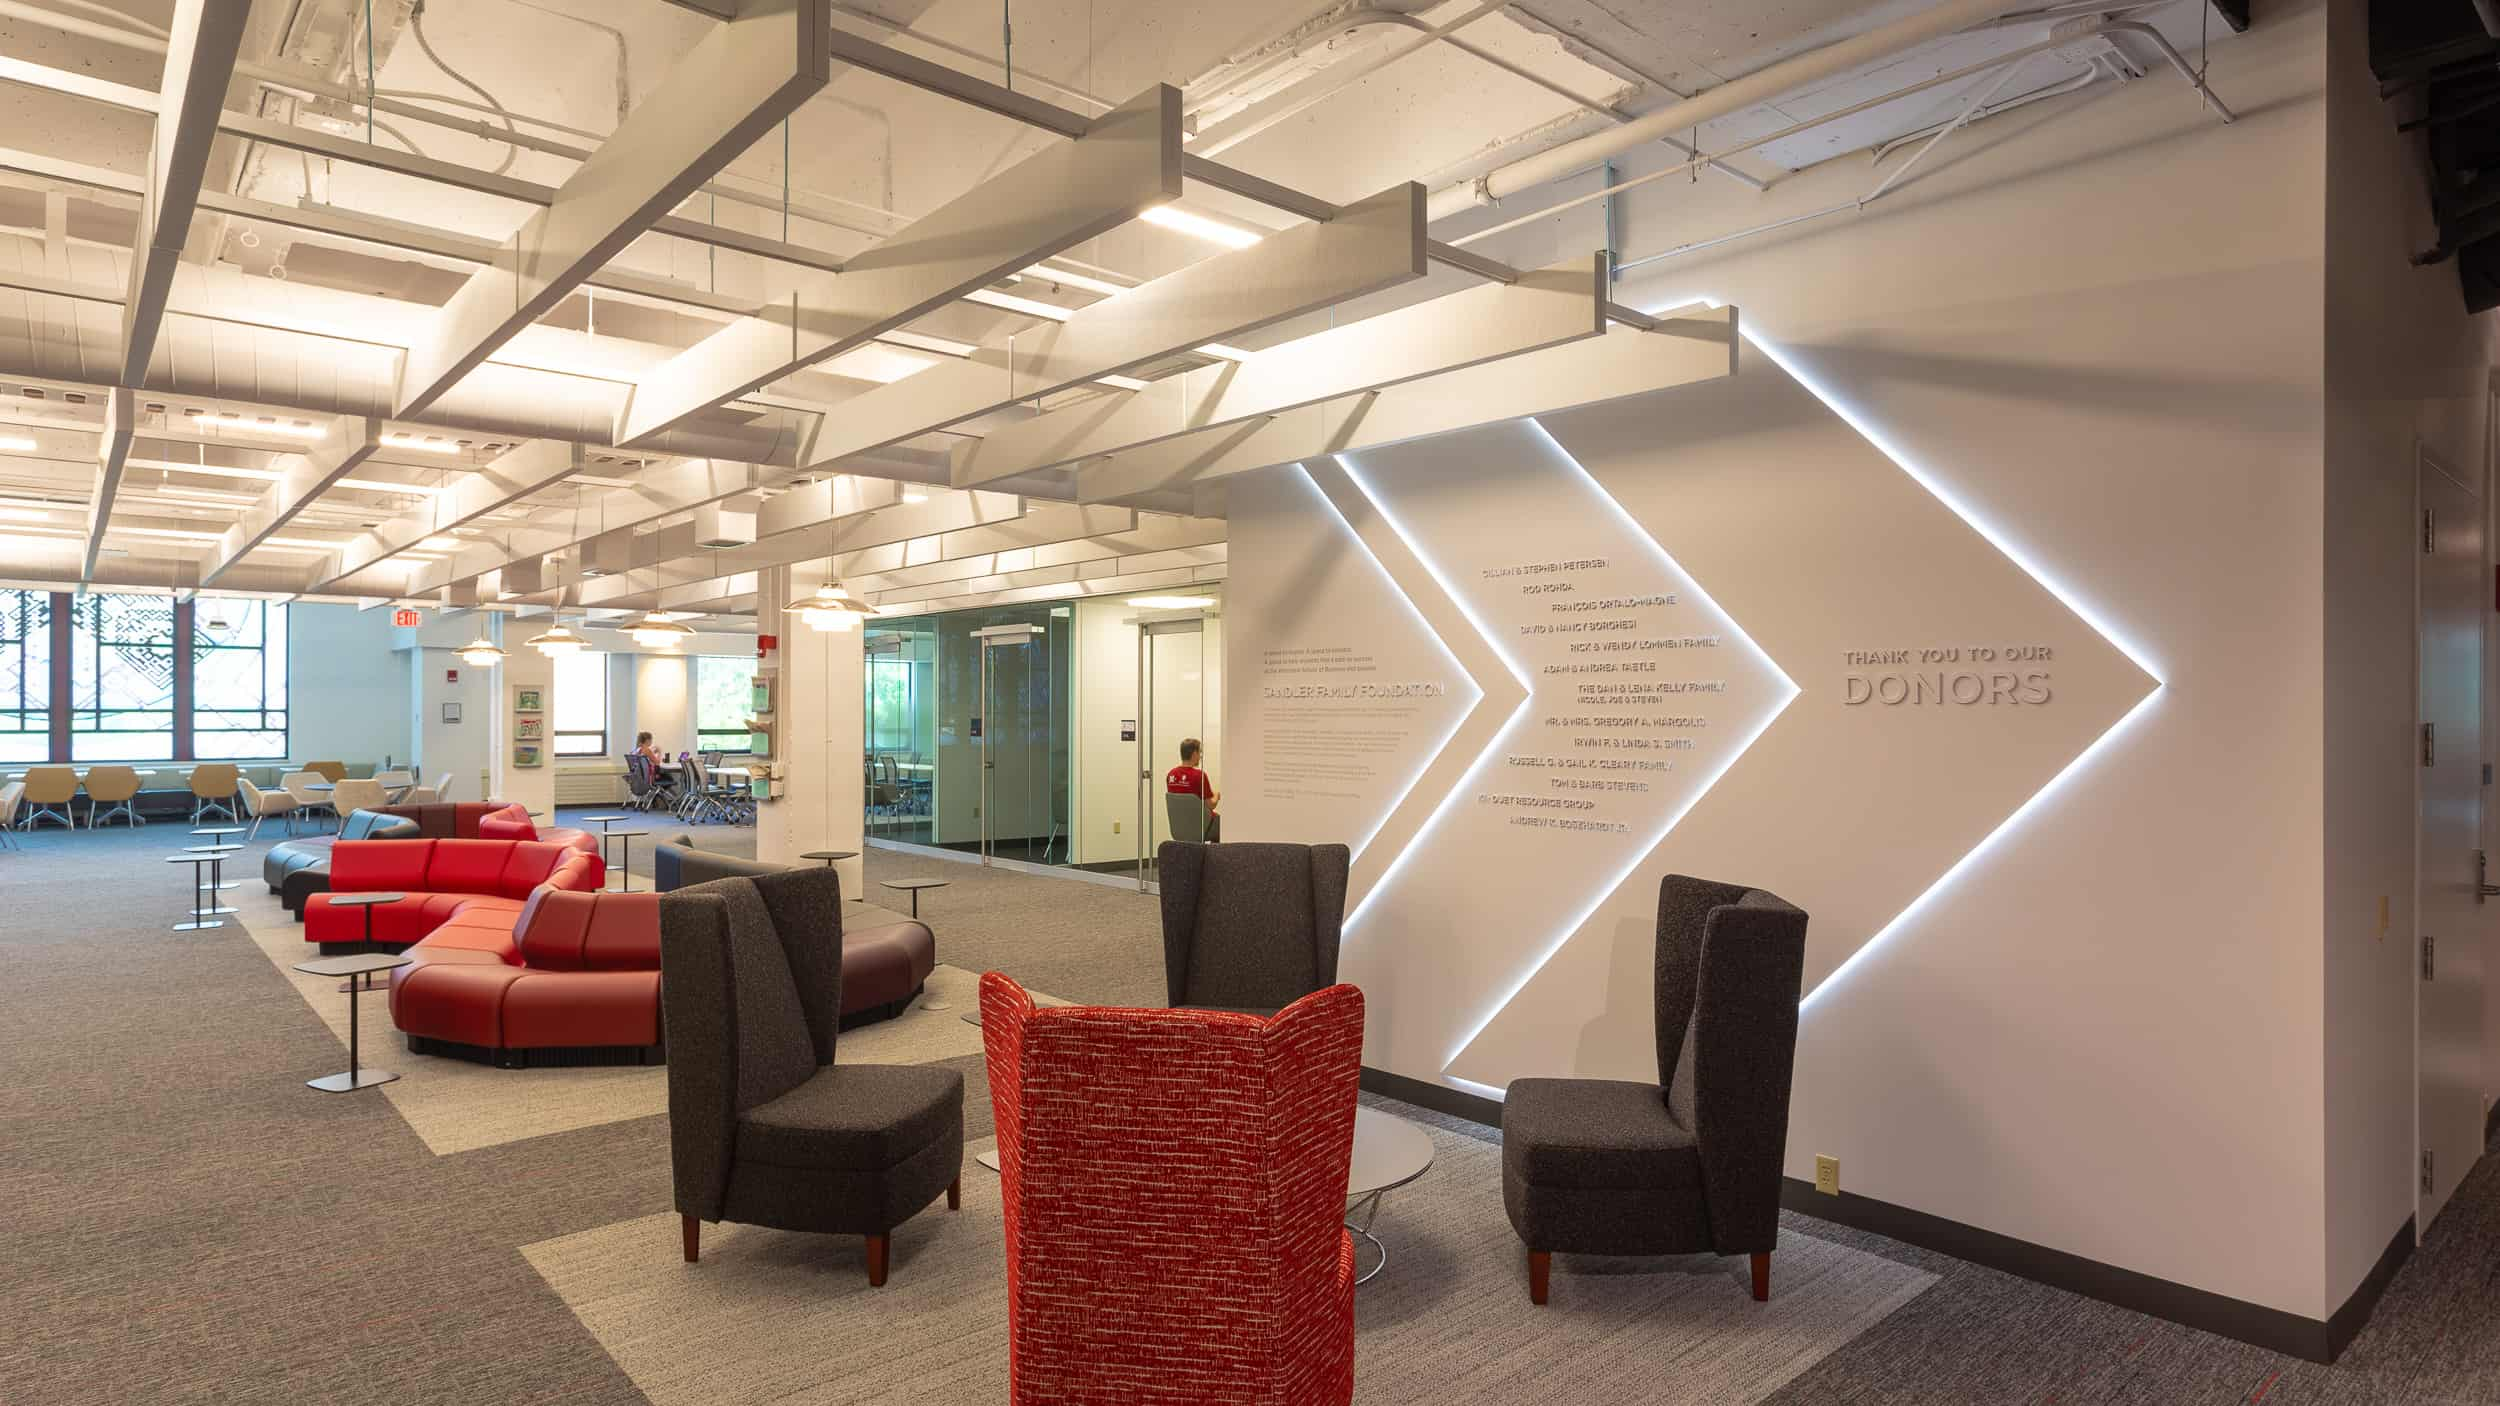 University of Wisconsin School of Business – Grainger Learning Commons. The Thysse experiential design team designed, fabricated and installed a custom LED-lit donor wall, custom branded privacy vinyl, dimensional metal letterforms